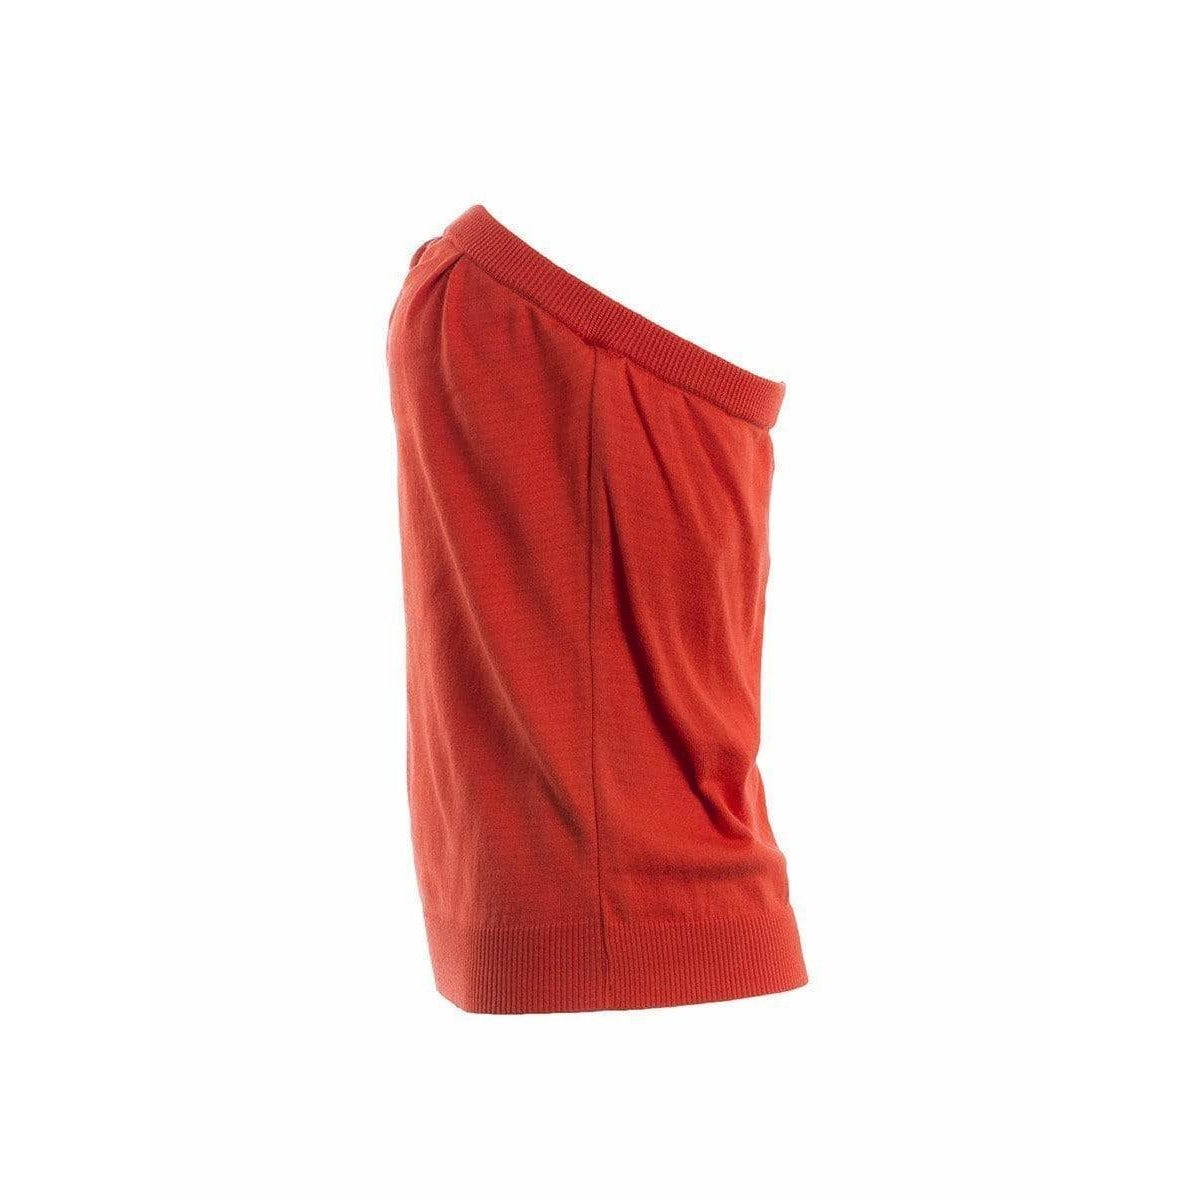 Undercover Womens Tops One Size / Red Tube Top